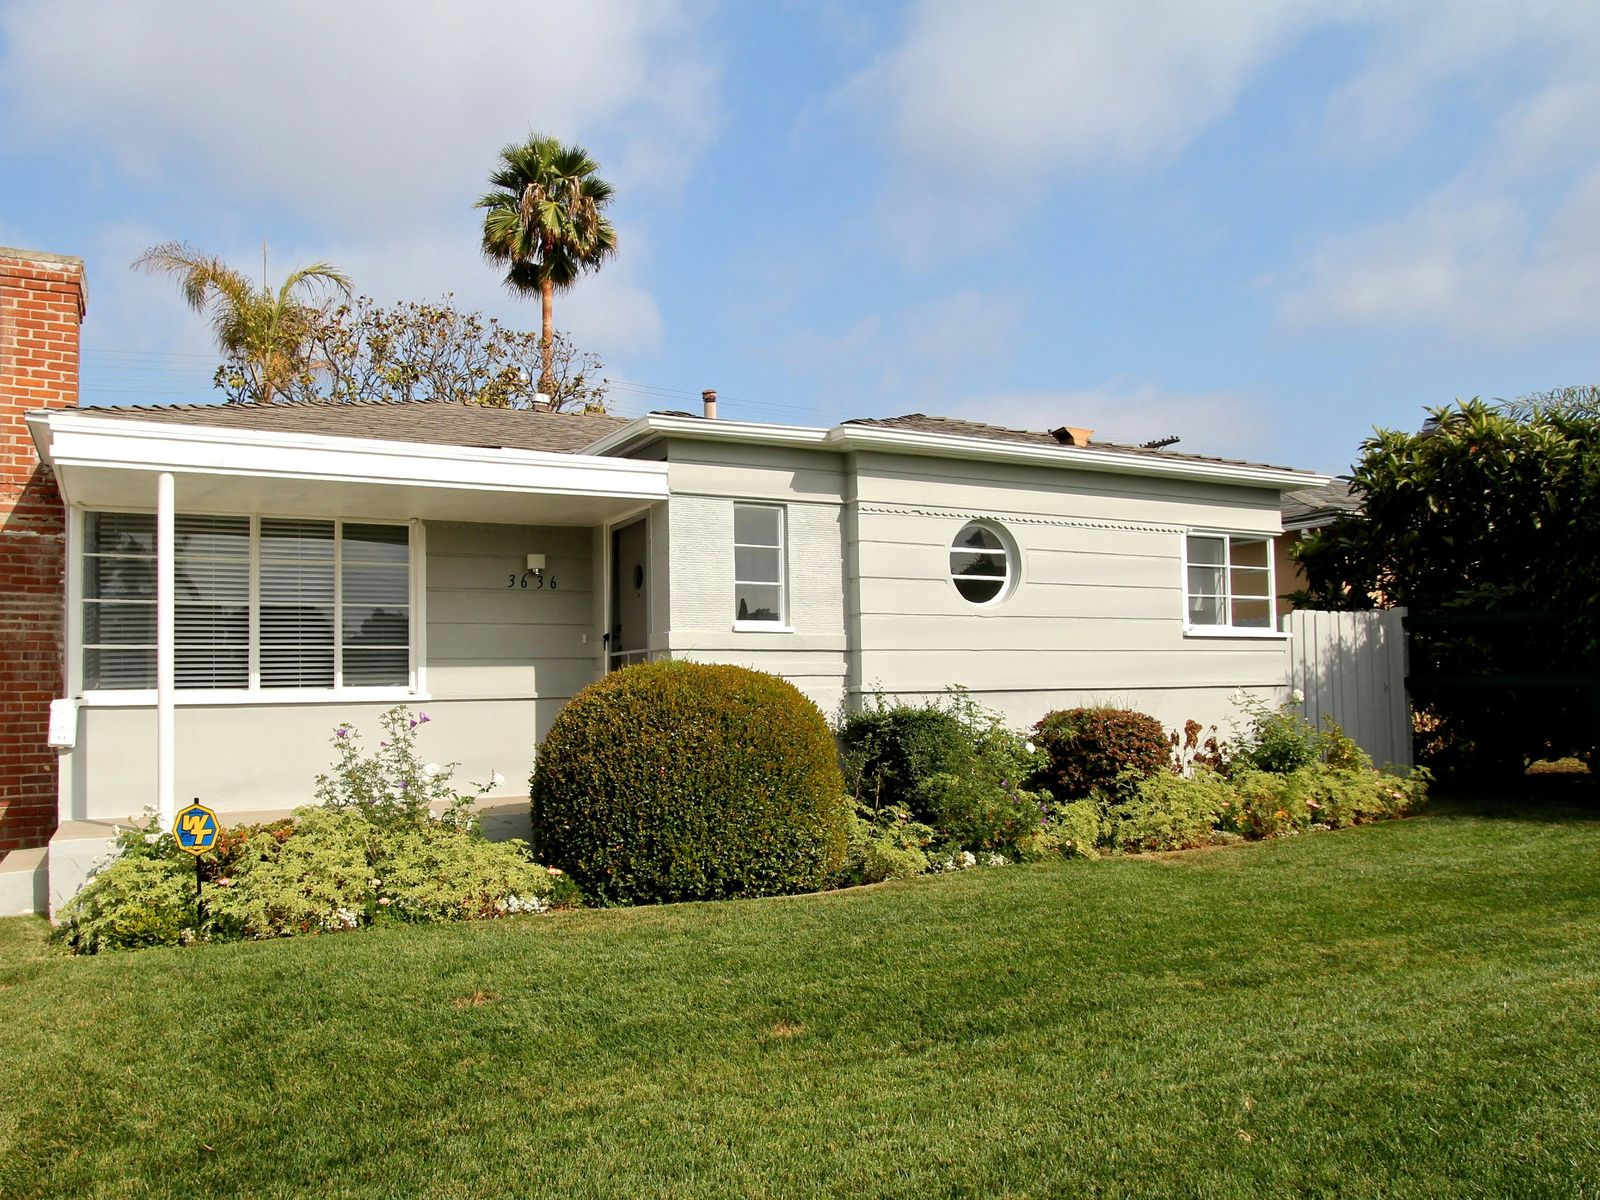 3636 Sawtelle Blvd, Los Angeles CA Single Family Home - Los Angeles Real Estate